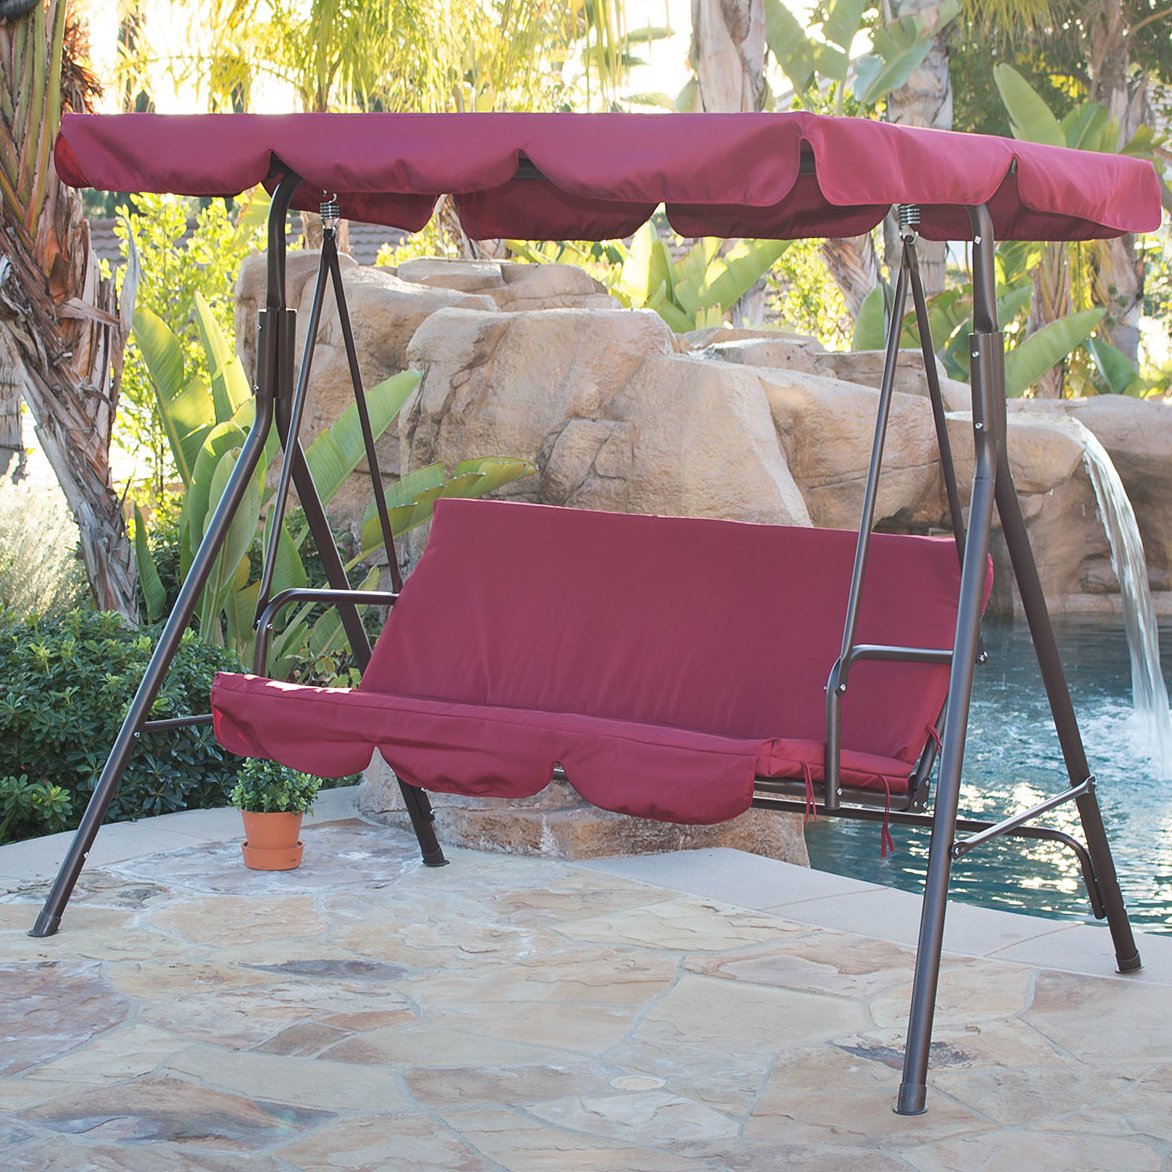 Details About 3 Person Steel Outdoor Patio Porch Swing Chair With Stand And Canopy Rocker Regarding Porch Swings With Canopy (View 5 of 25)